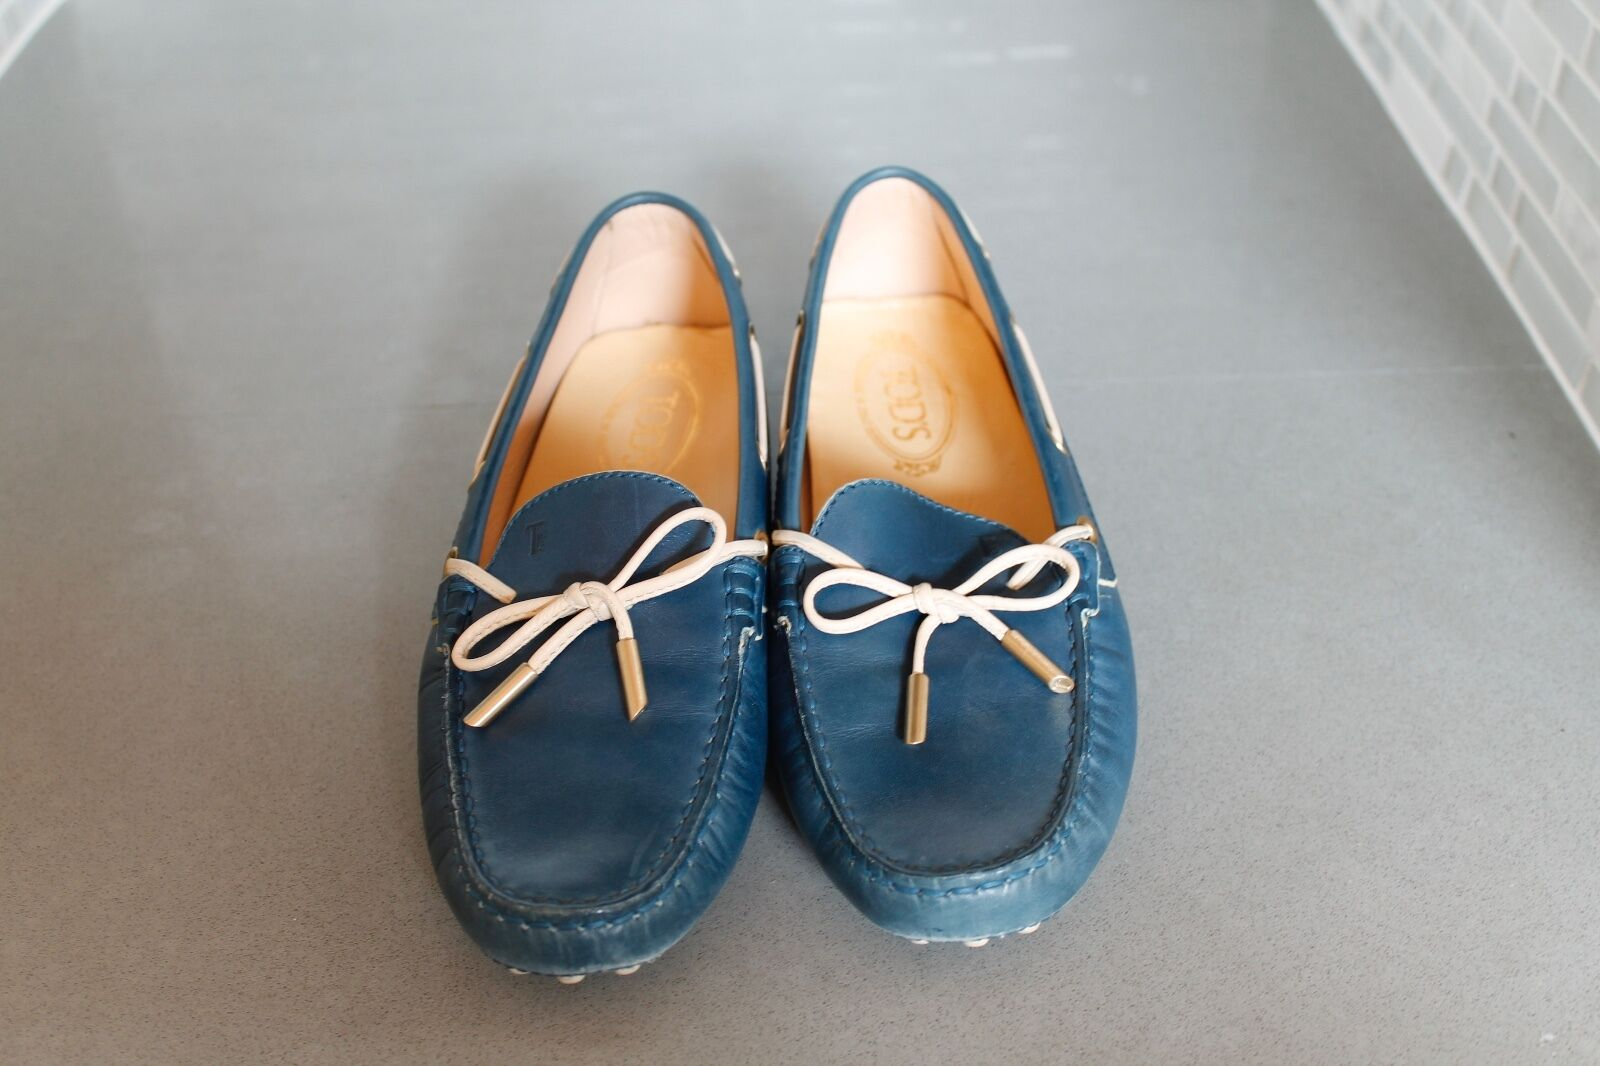 Tod's Blue Blue Blue Leather Driving Loafers Size 38.5 4c825c